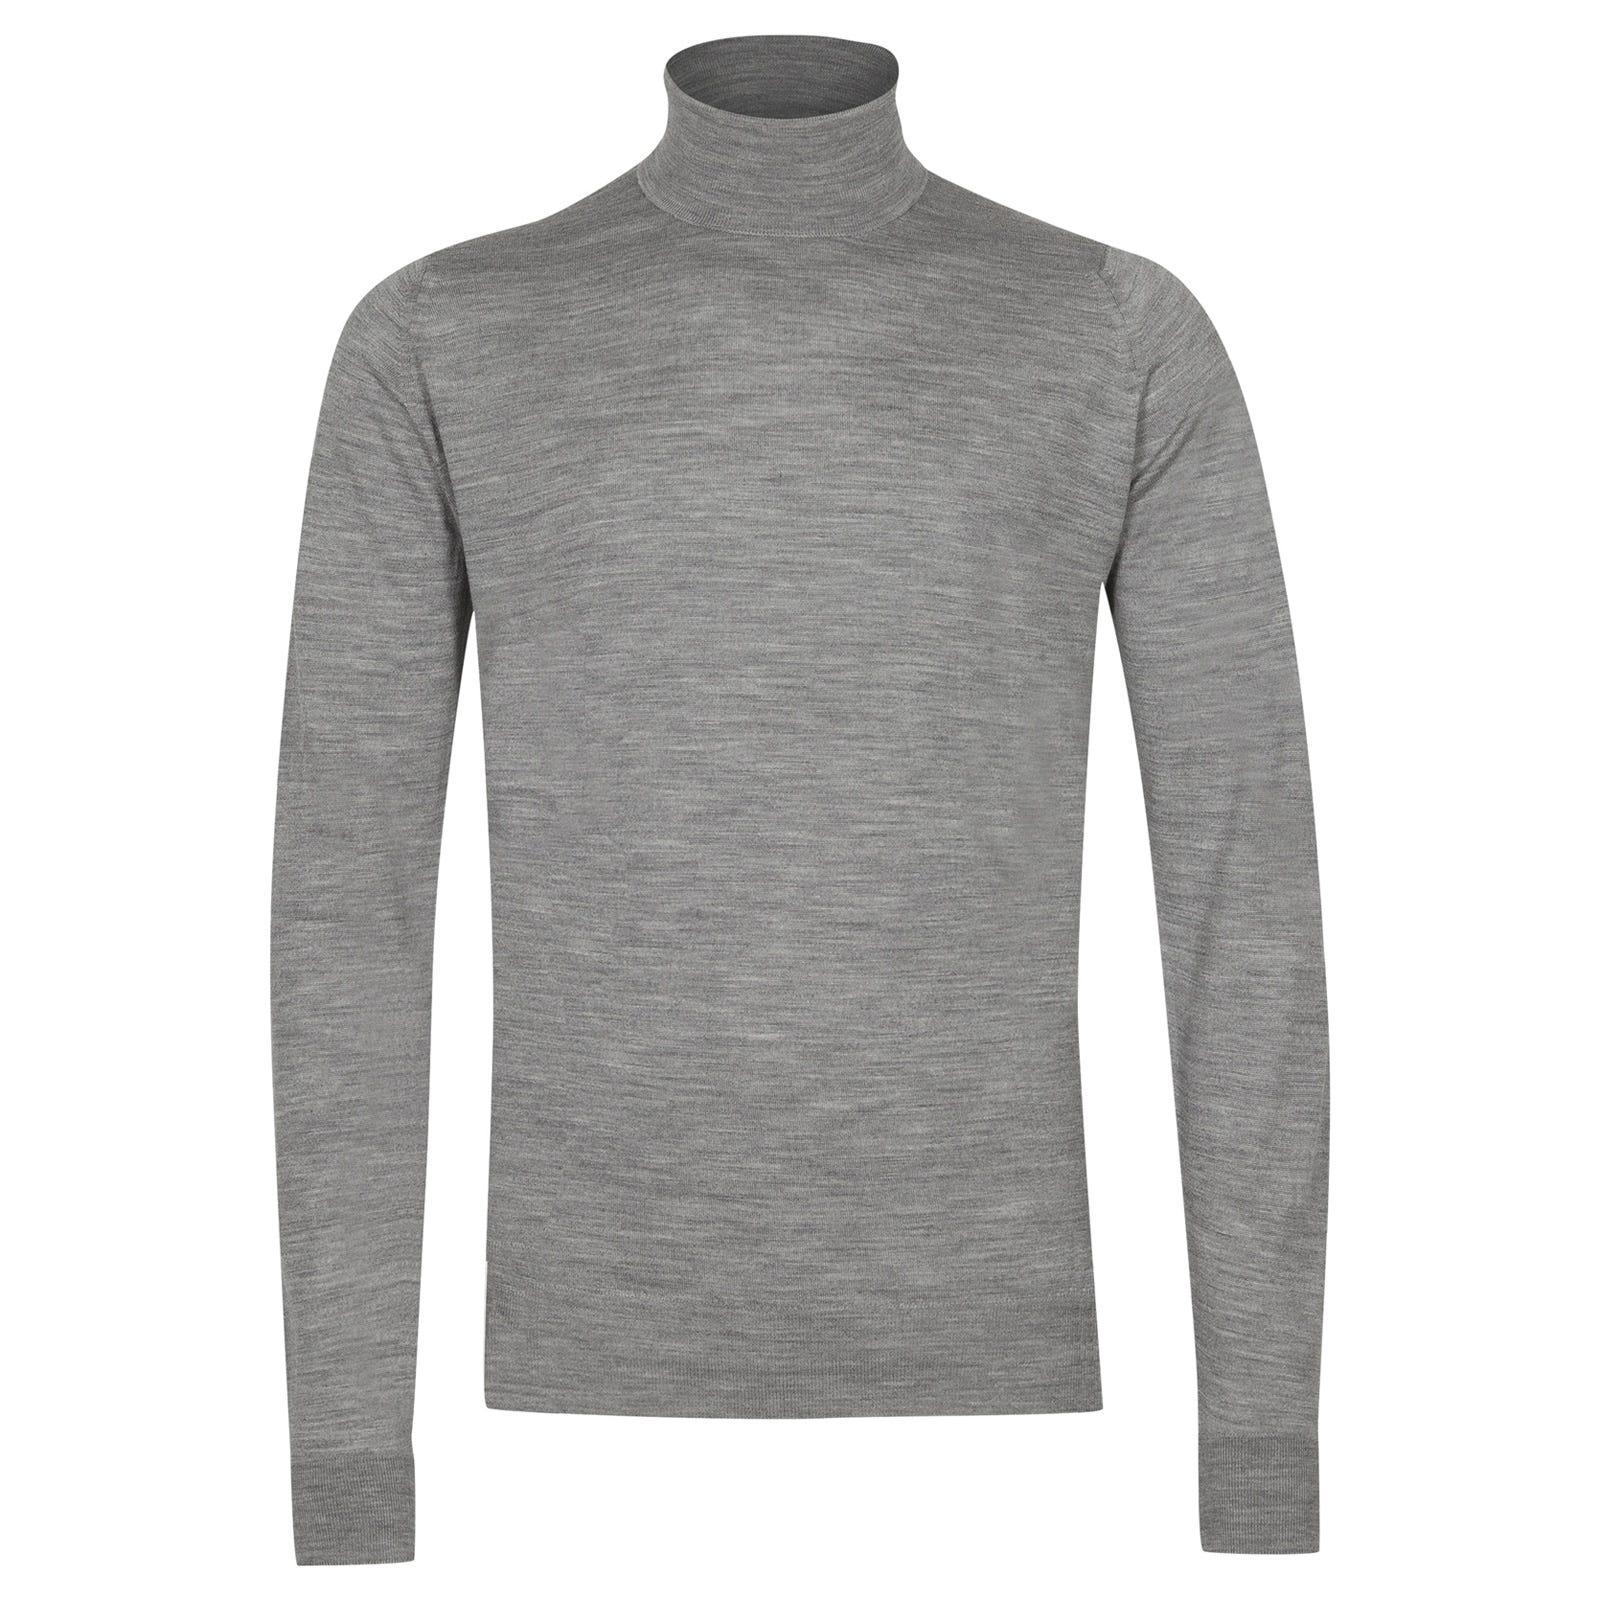 John Smedley richards Merino Wool Pullover in Silver-L